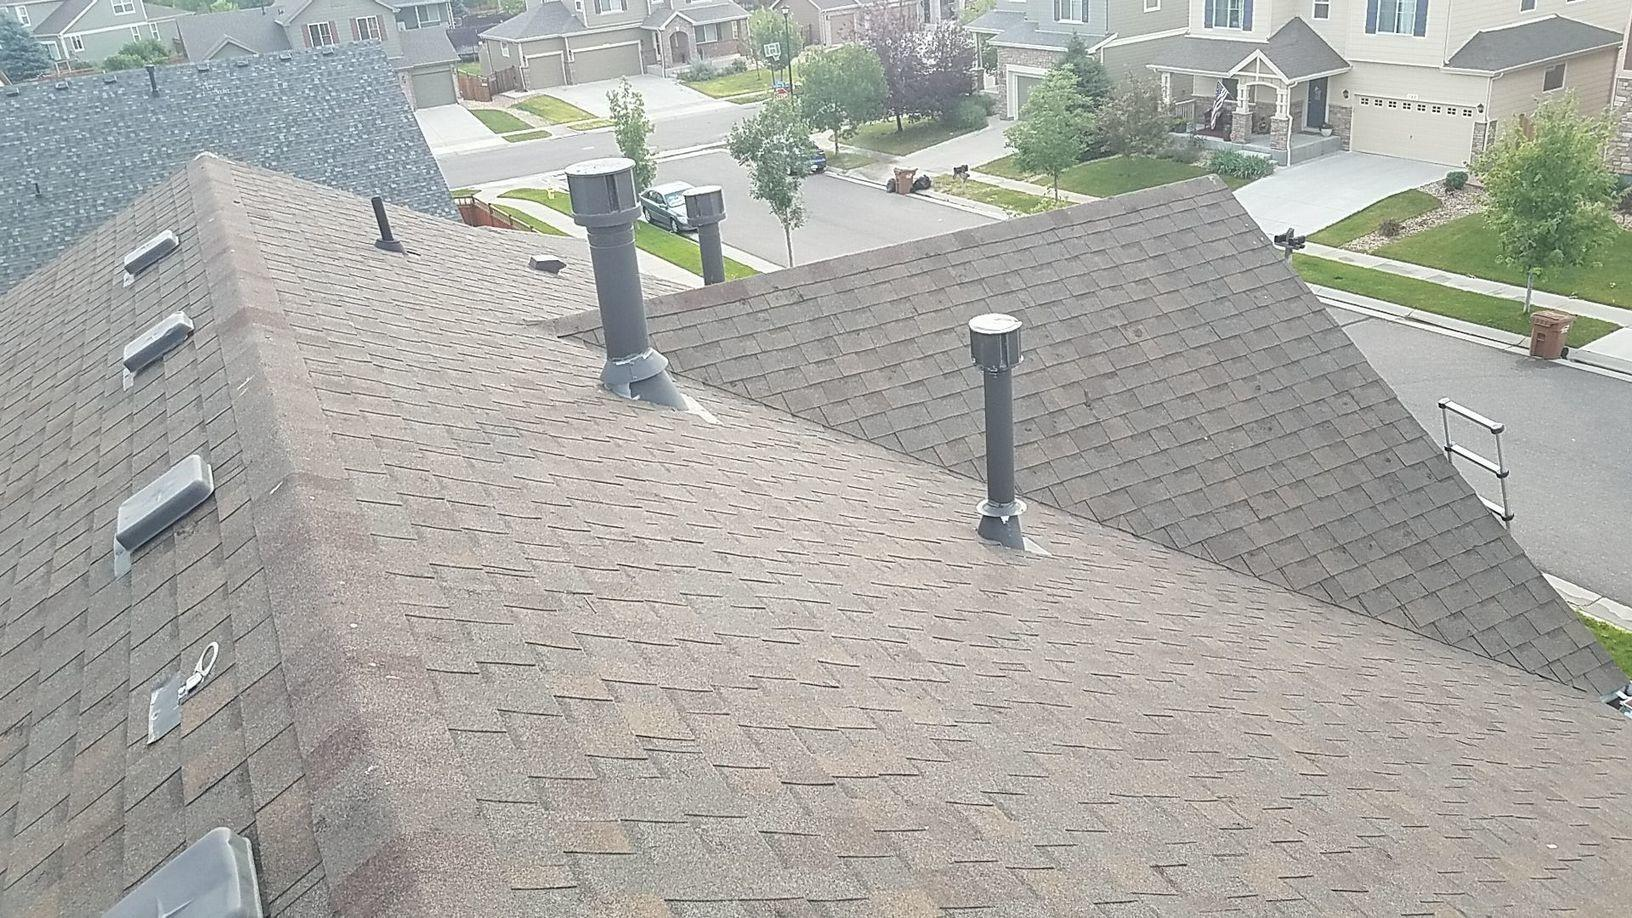 Brighton, CO Owens Corning Roof Replacement - Before Photo